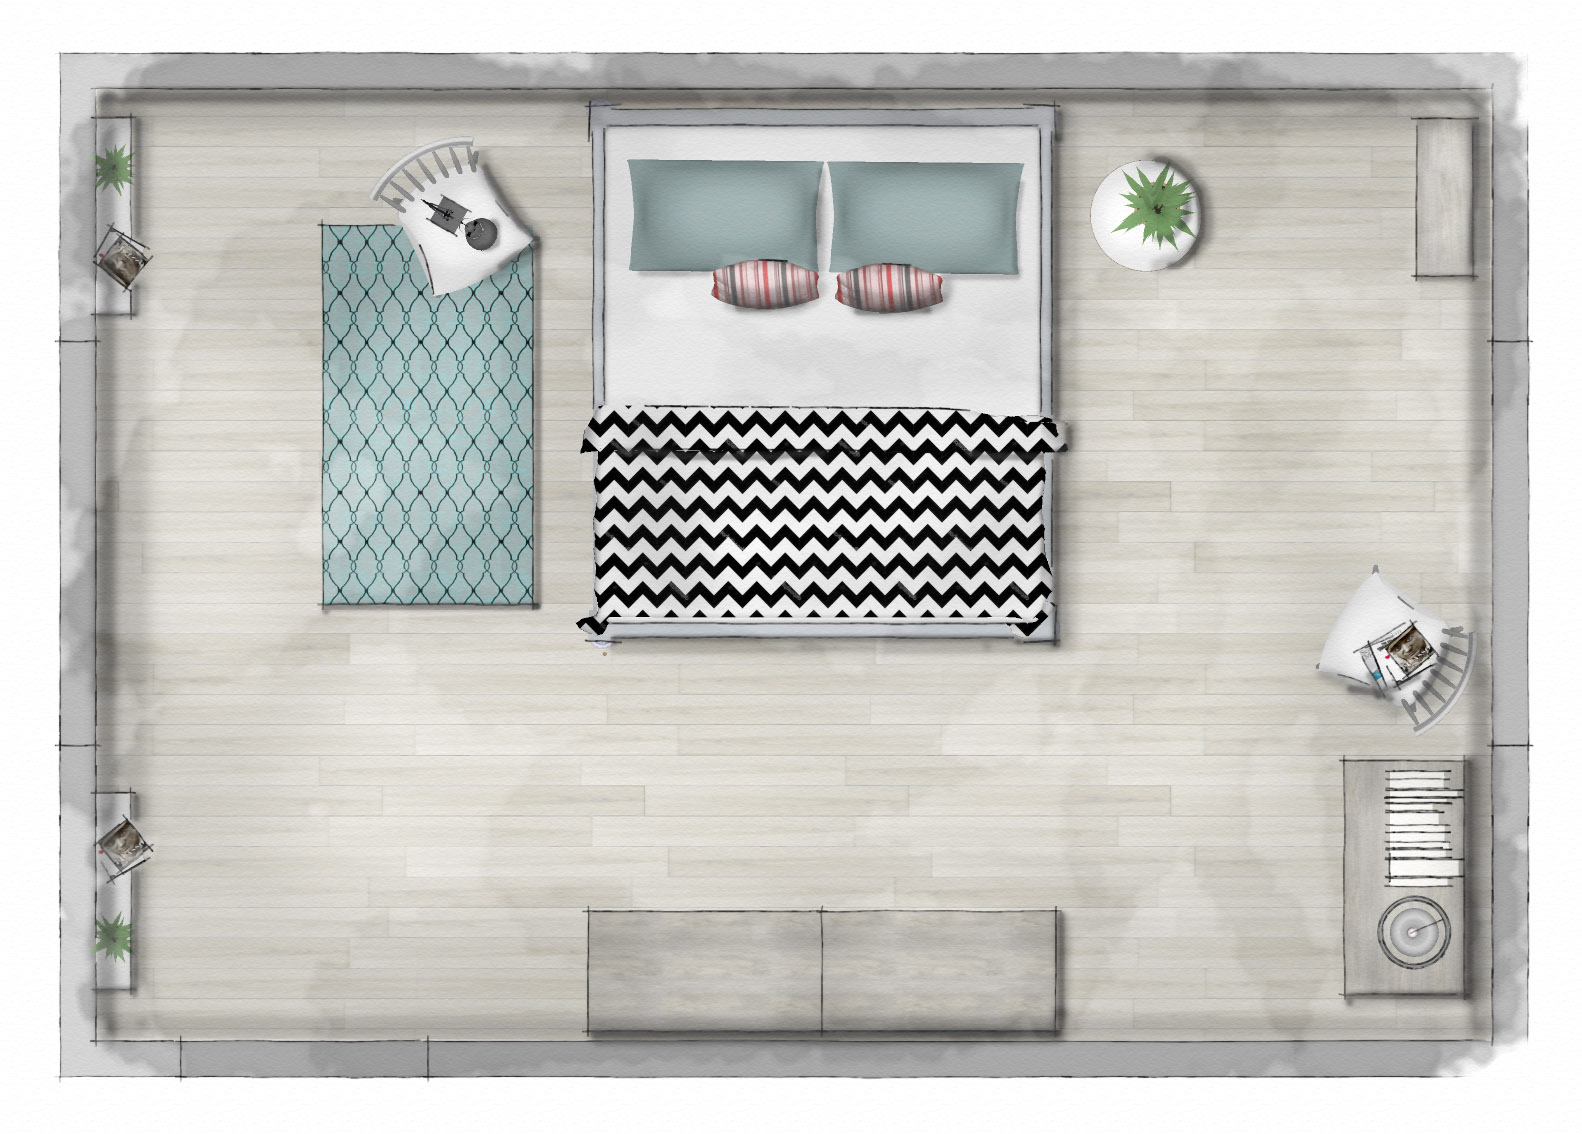 new course how to render your sketchup plans sketchup hub rendered sketchup floor plan scandinavian inspired